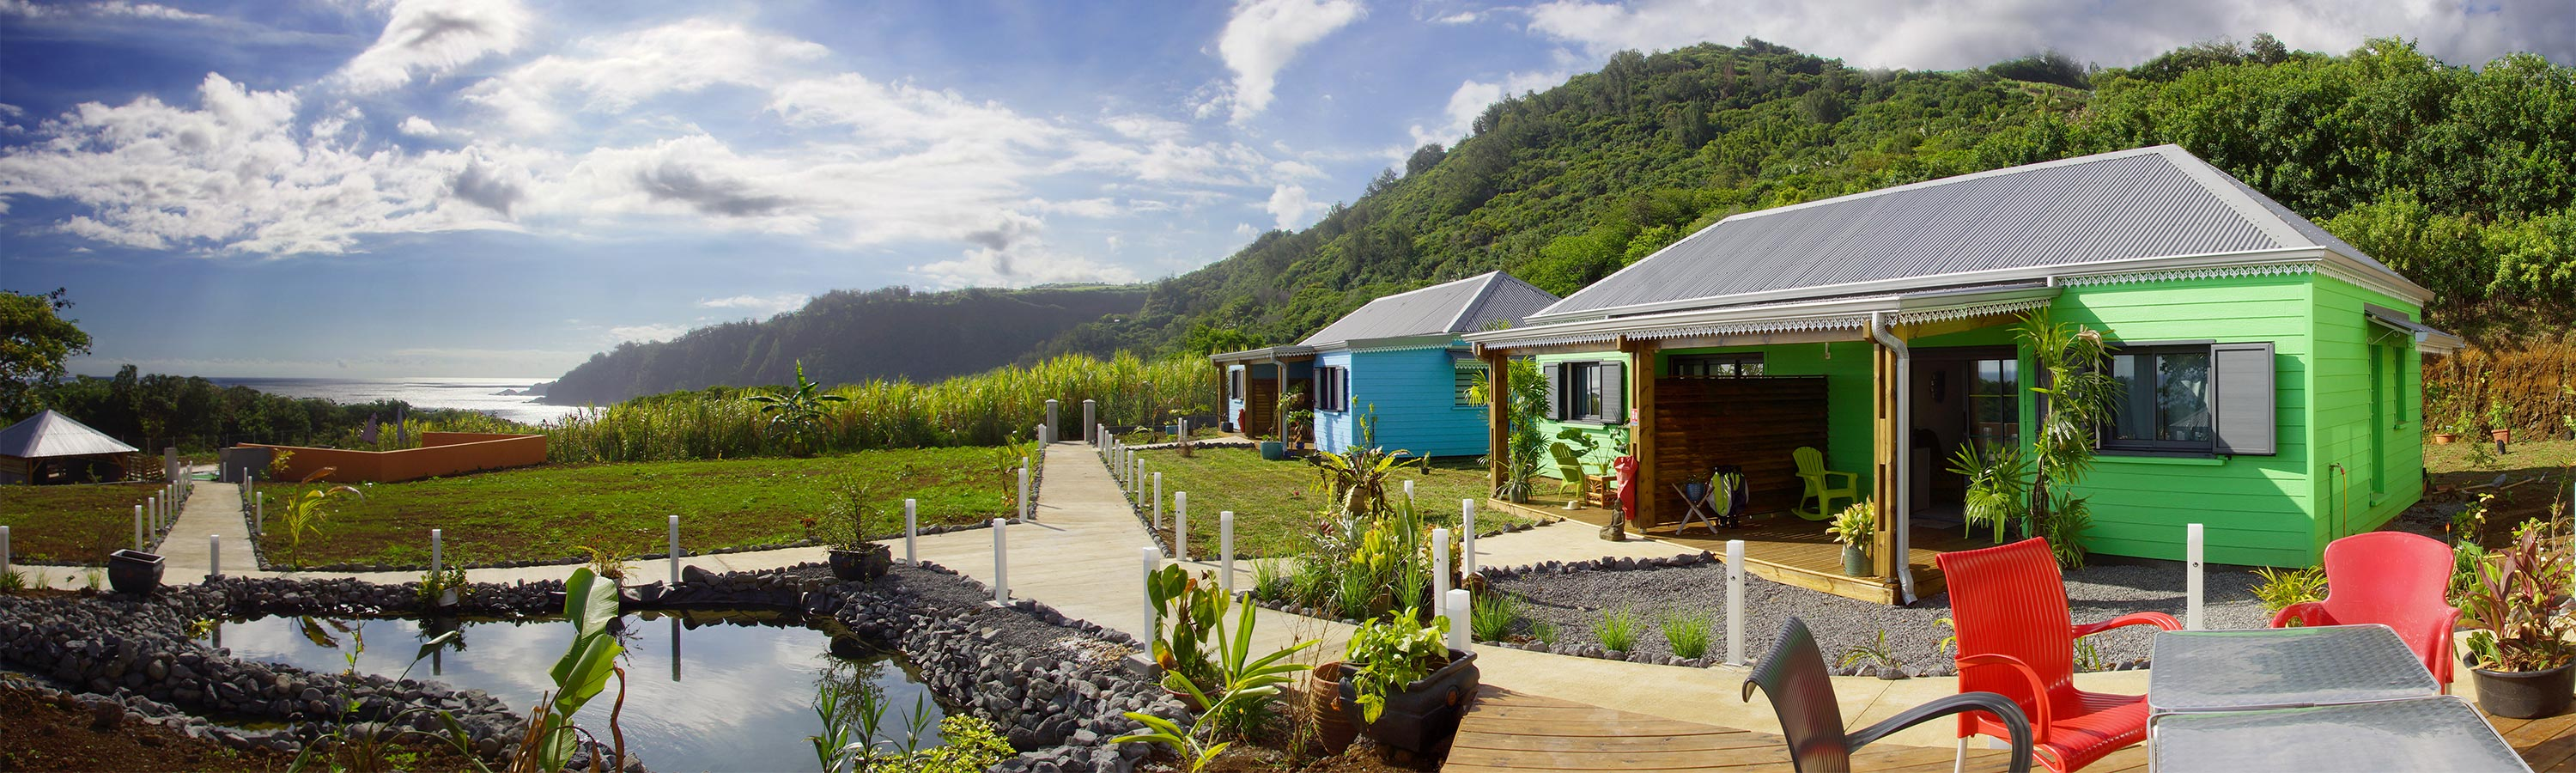 Seasonal holiday rental. Bungalow rental. Reunion Island 974